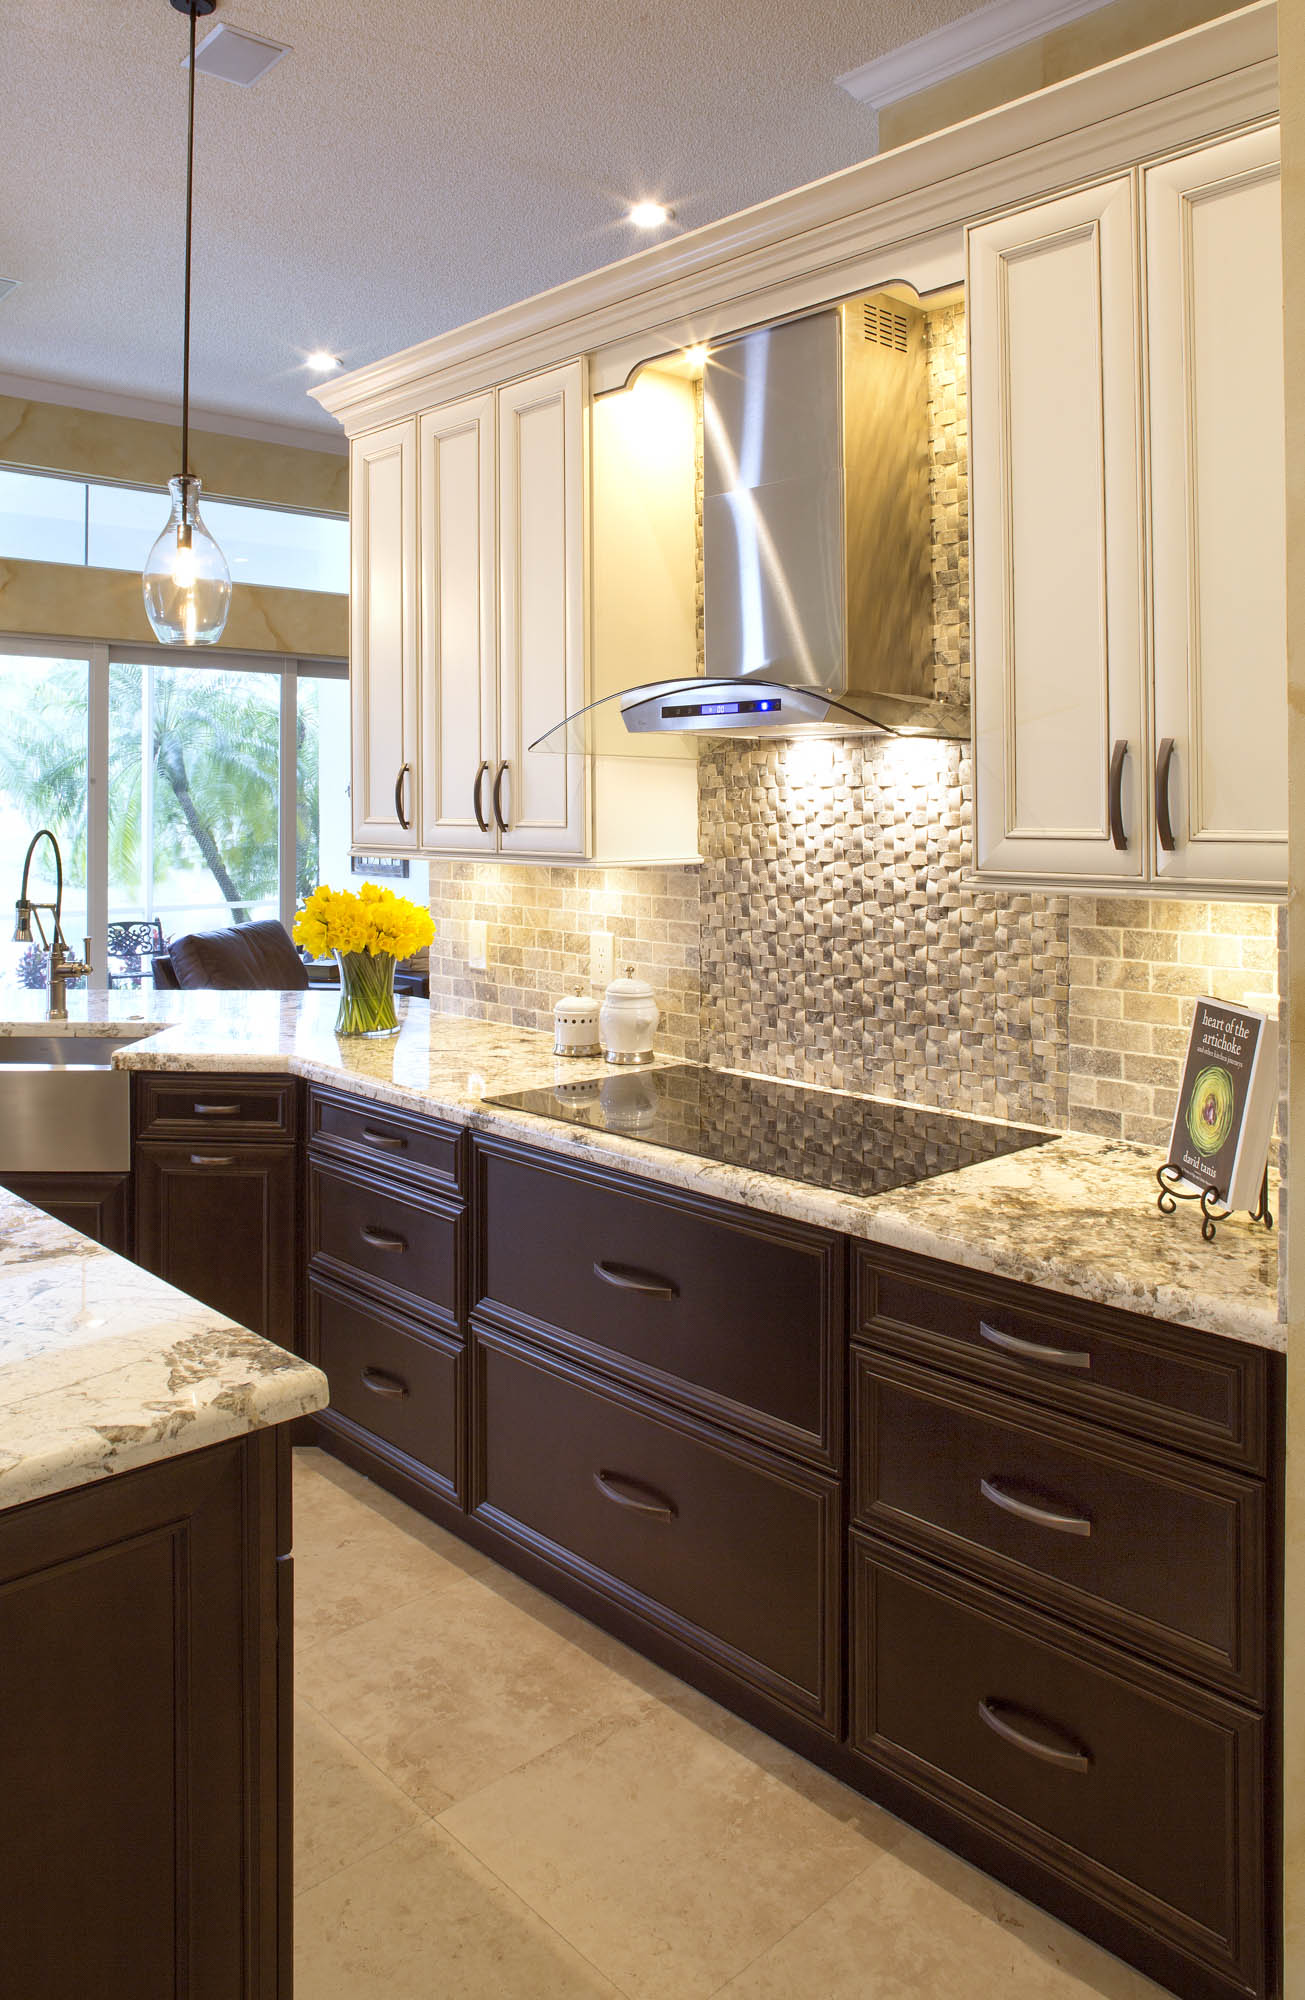 Stained Kitchen Base Cabinets In Espresso By Showplace Cabinetry   View 1